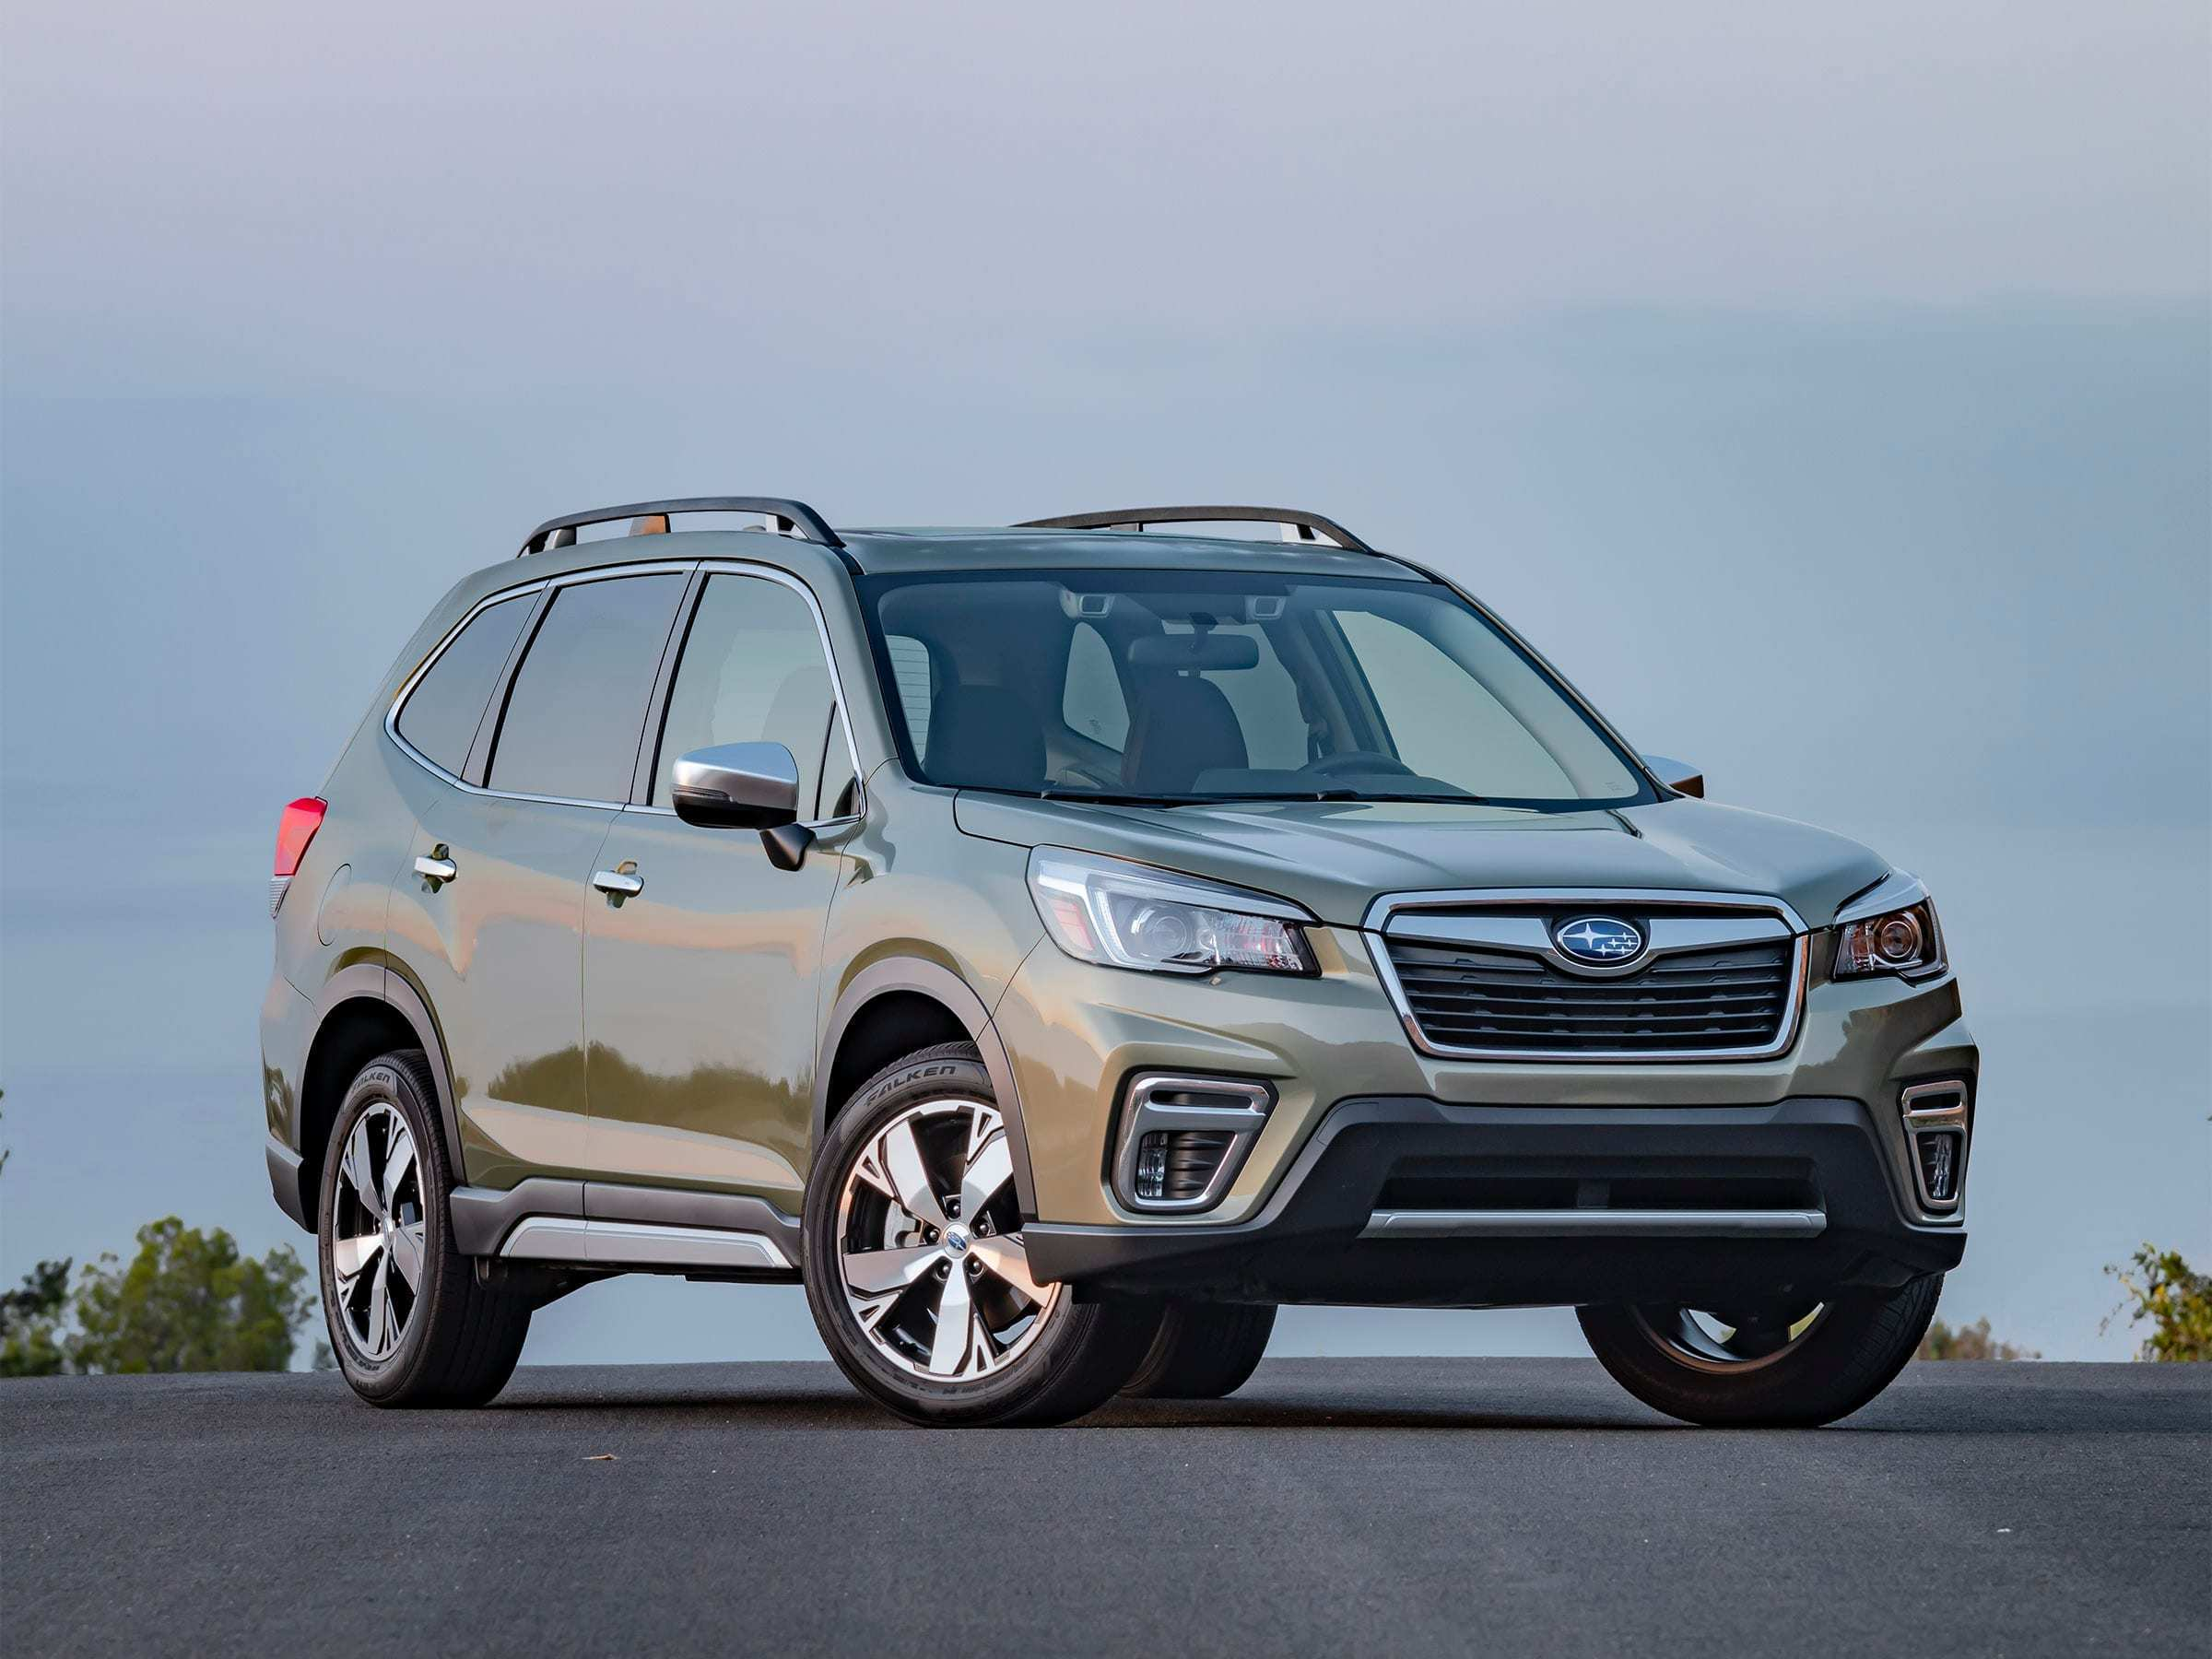 18 The Best 2019 Subaru Forester Mpg Performance